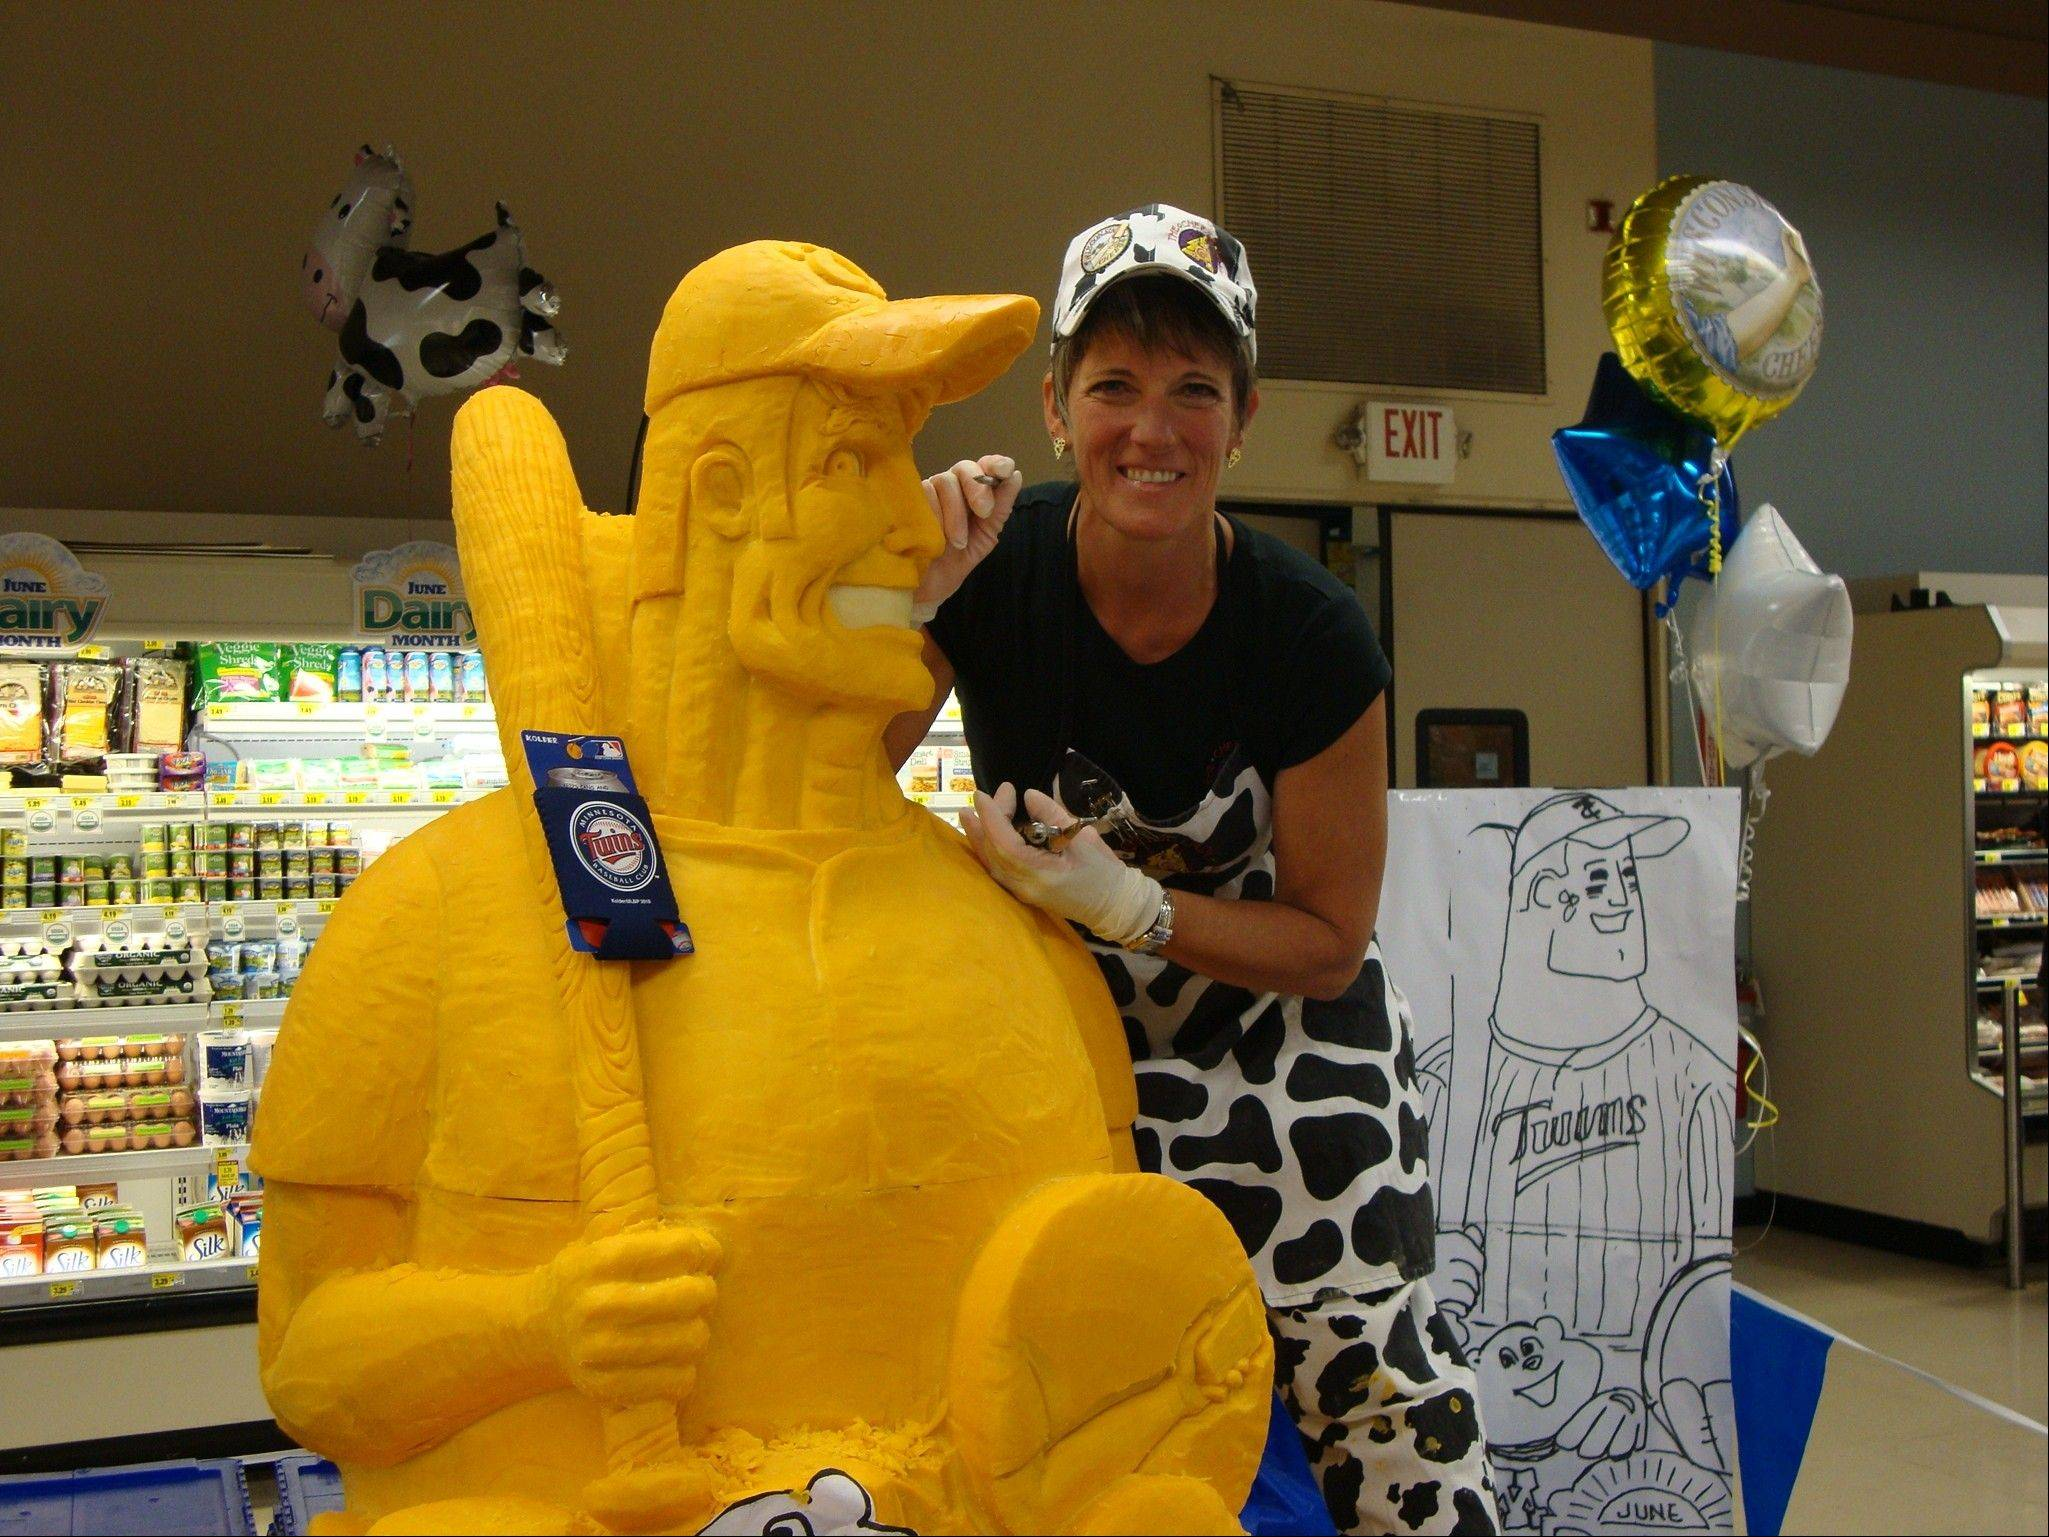 While she does carve busts of real people, cheese sculptor Sarah Kaufmann says she prefers doing mascots and caricatures.